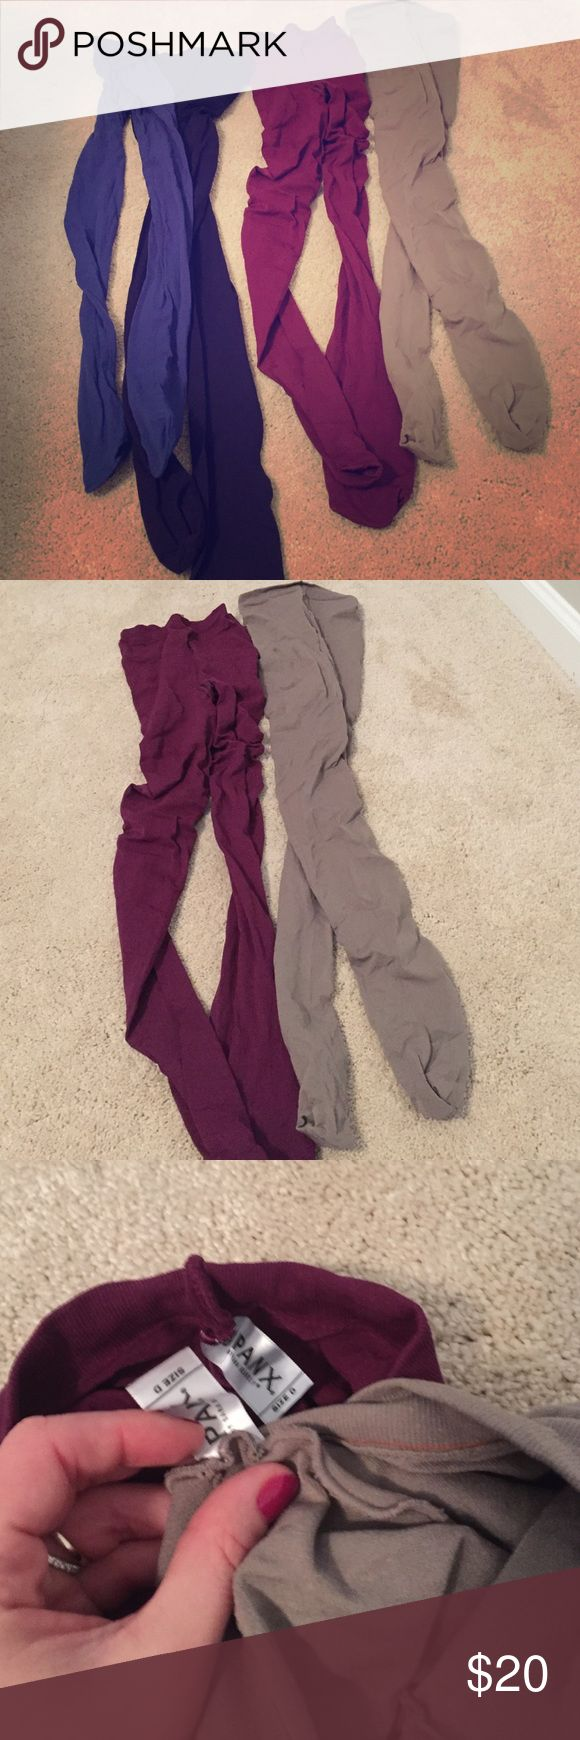 Assorted Colored Tights 4 pair of assorted colored tights. The maroon and tan are spanx size d the blue and purple are brand unknown and tagless but size equivalent to a L 10/12. All in good condition and rarely, if ever, worn. SPANX Accessories Hosiery & Socks